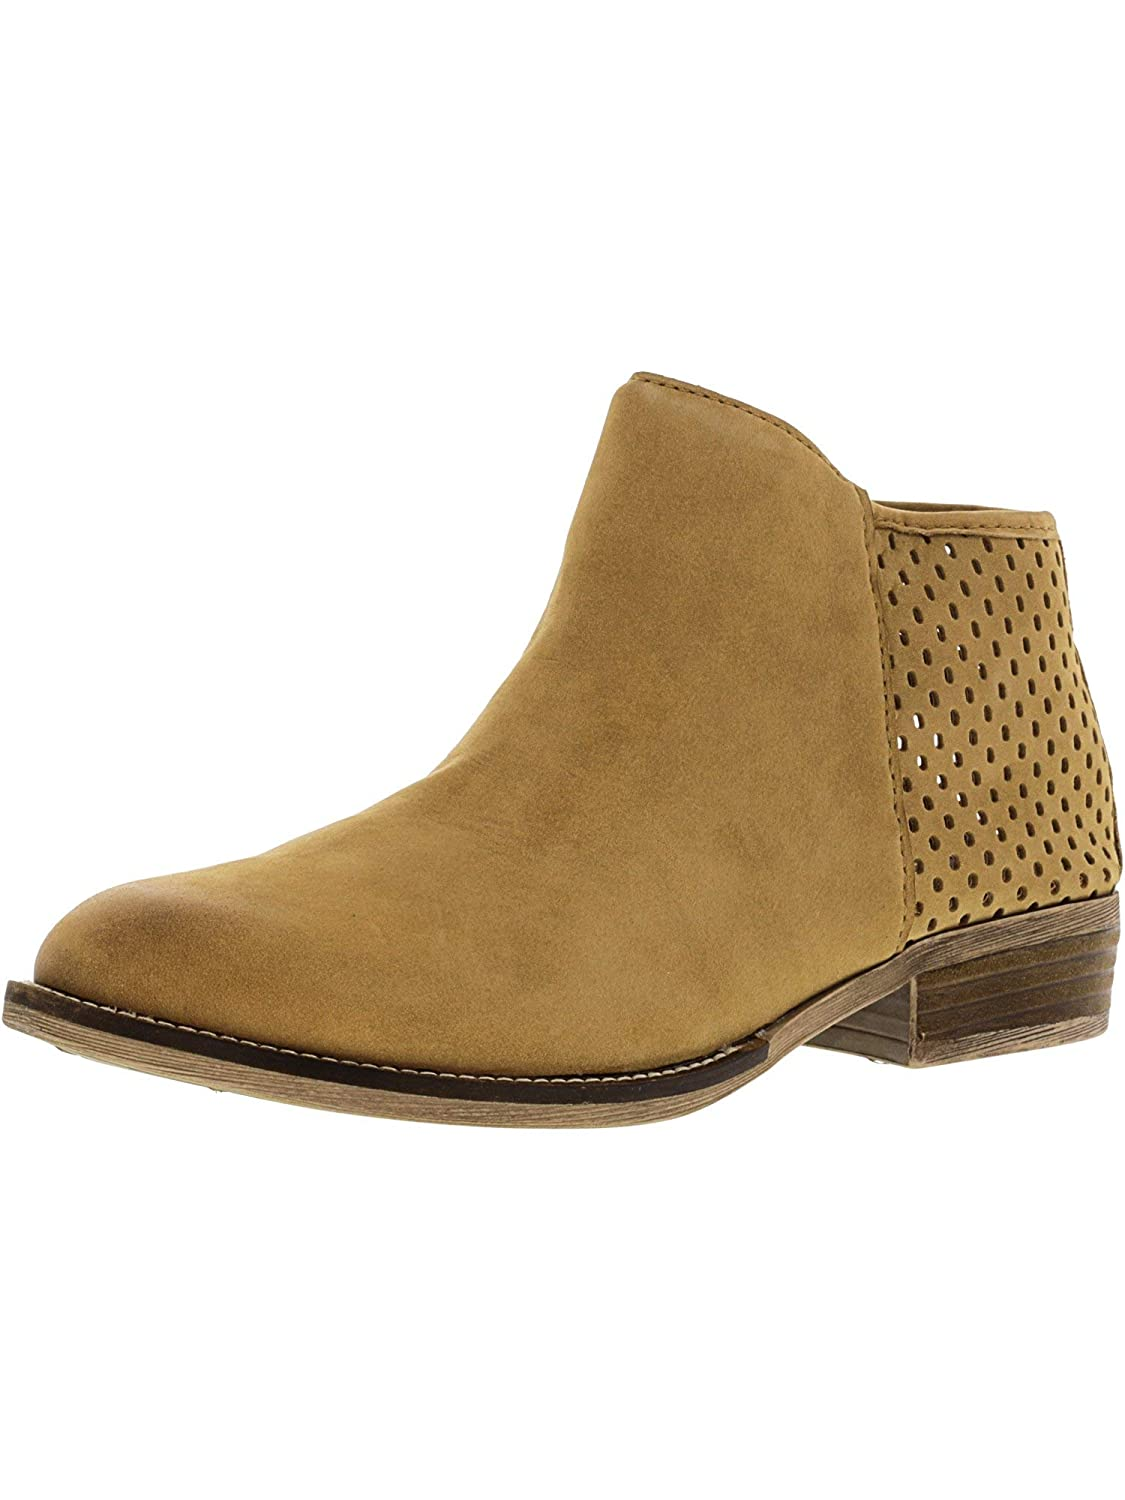 Steve Madden Womens Beverly Leather Ankle-High Boot